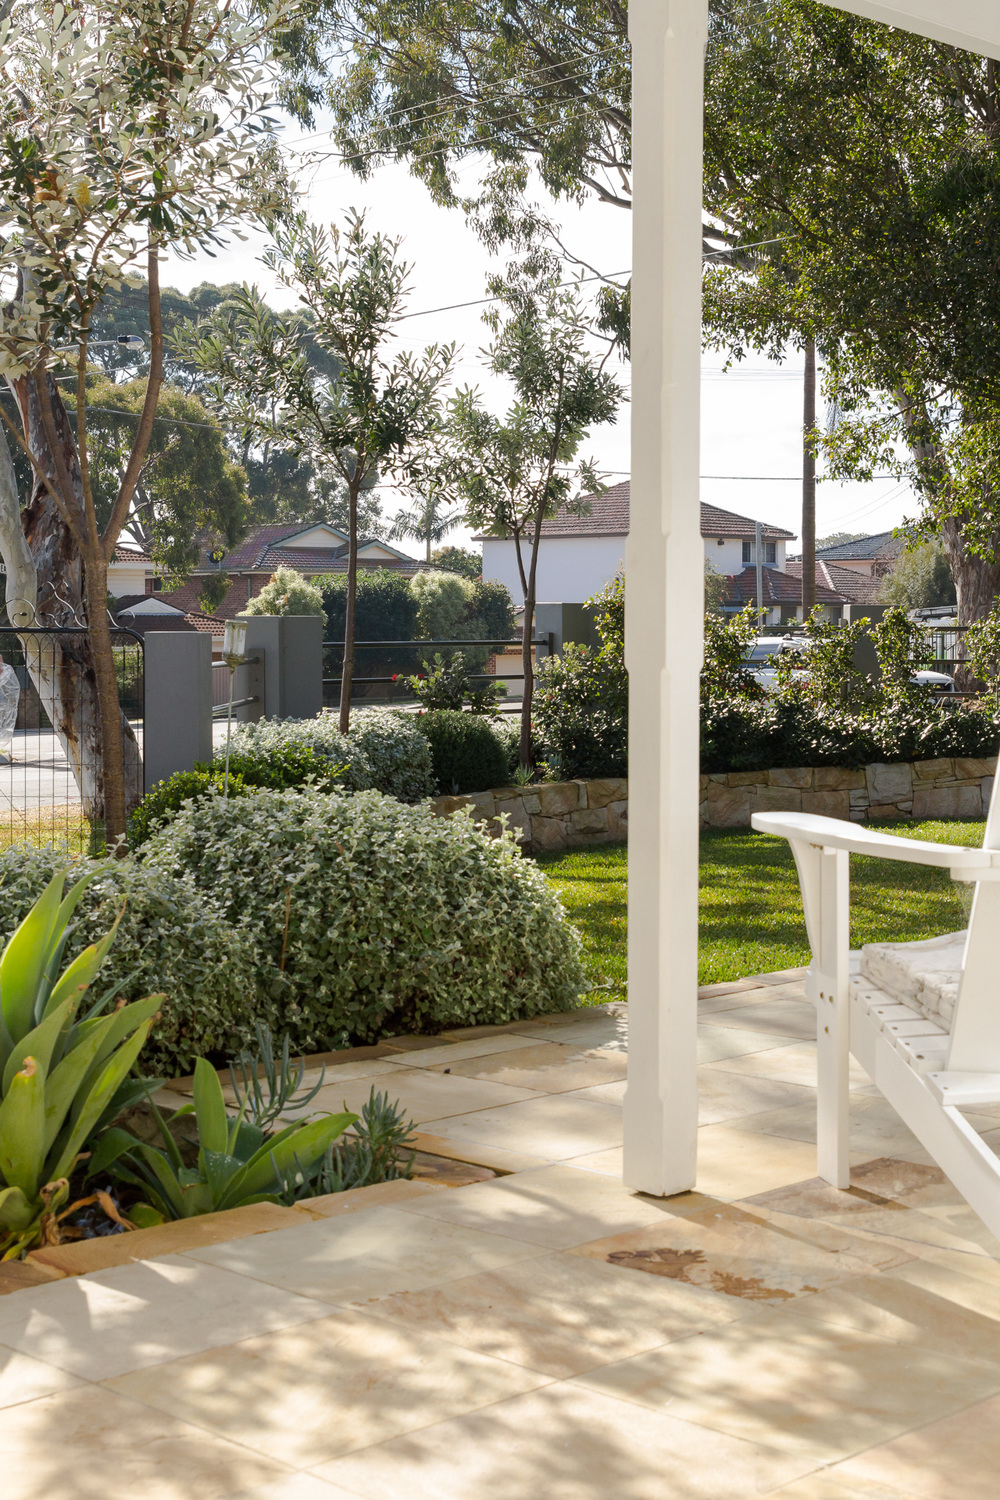 Cronulla wallis residential gallery sitedesign studios for Sd garden designs